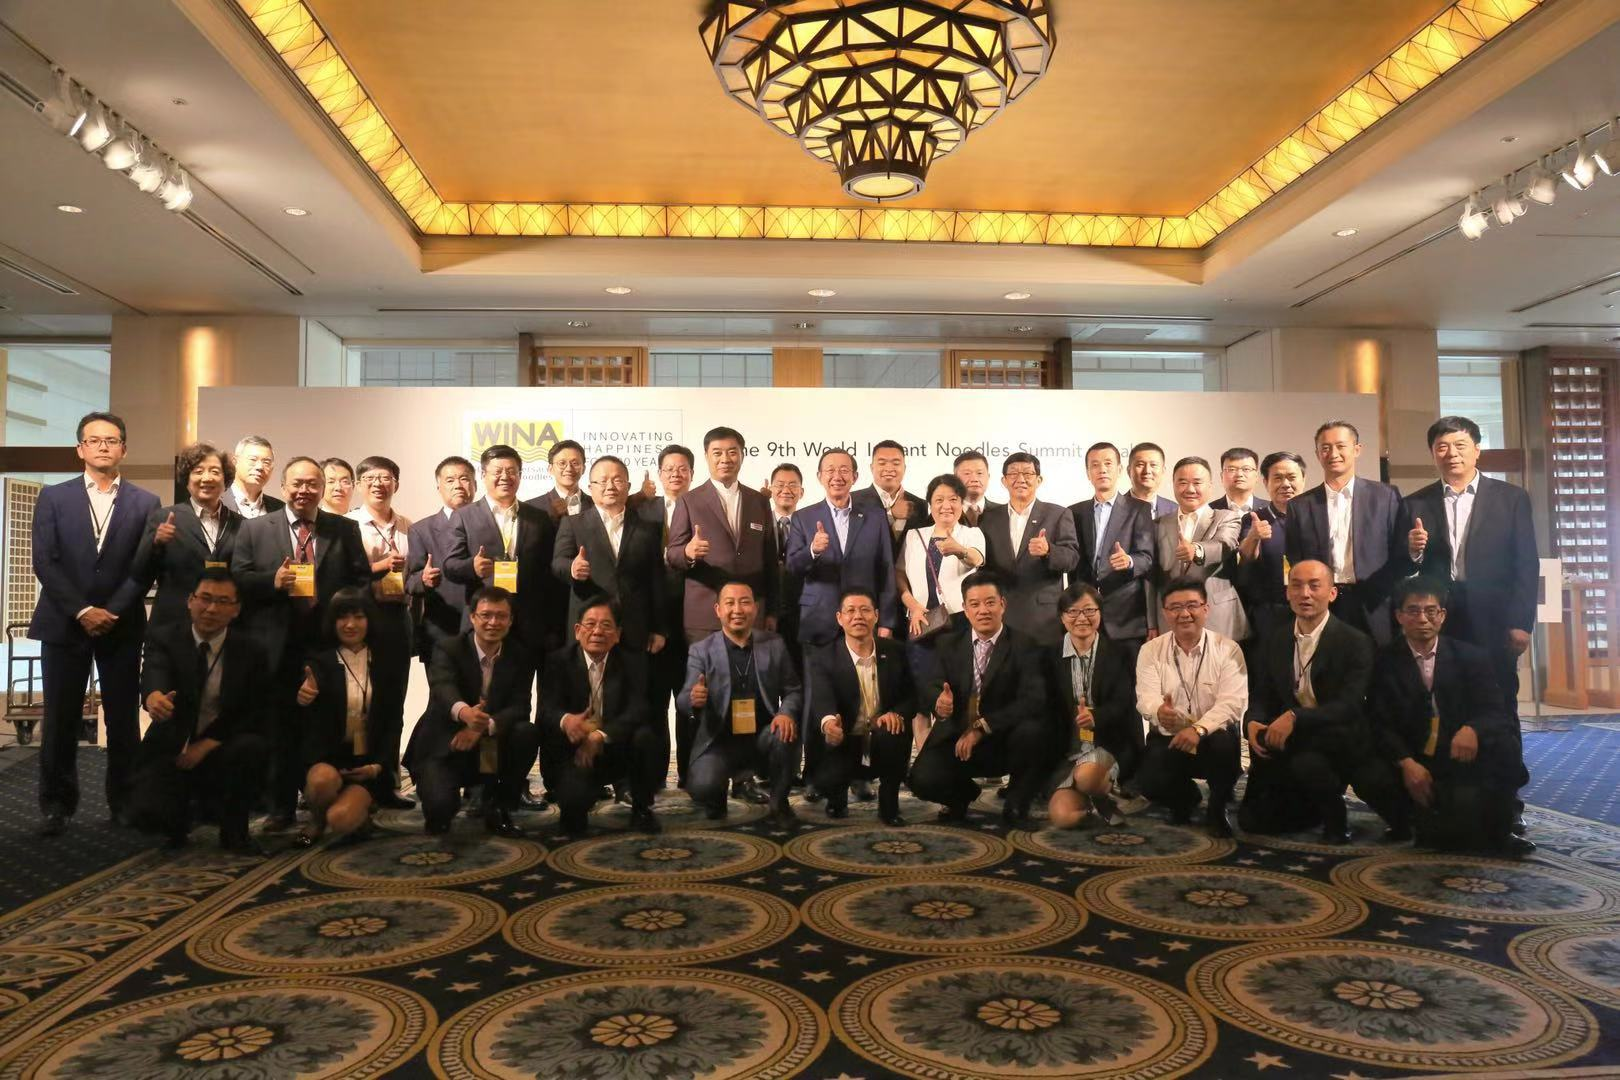 The 9th World Instant Noodles Summit